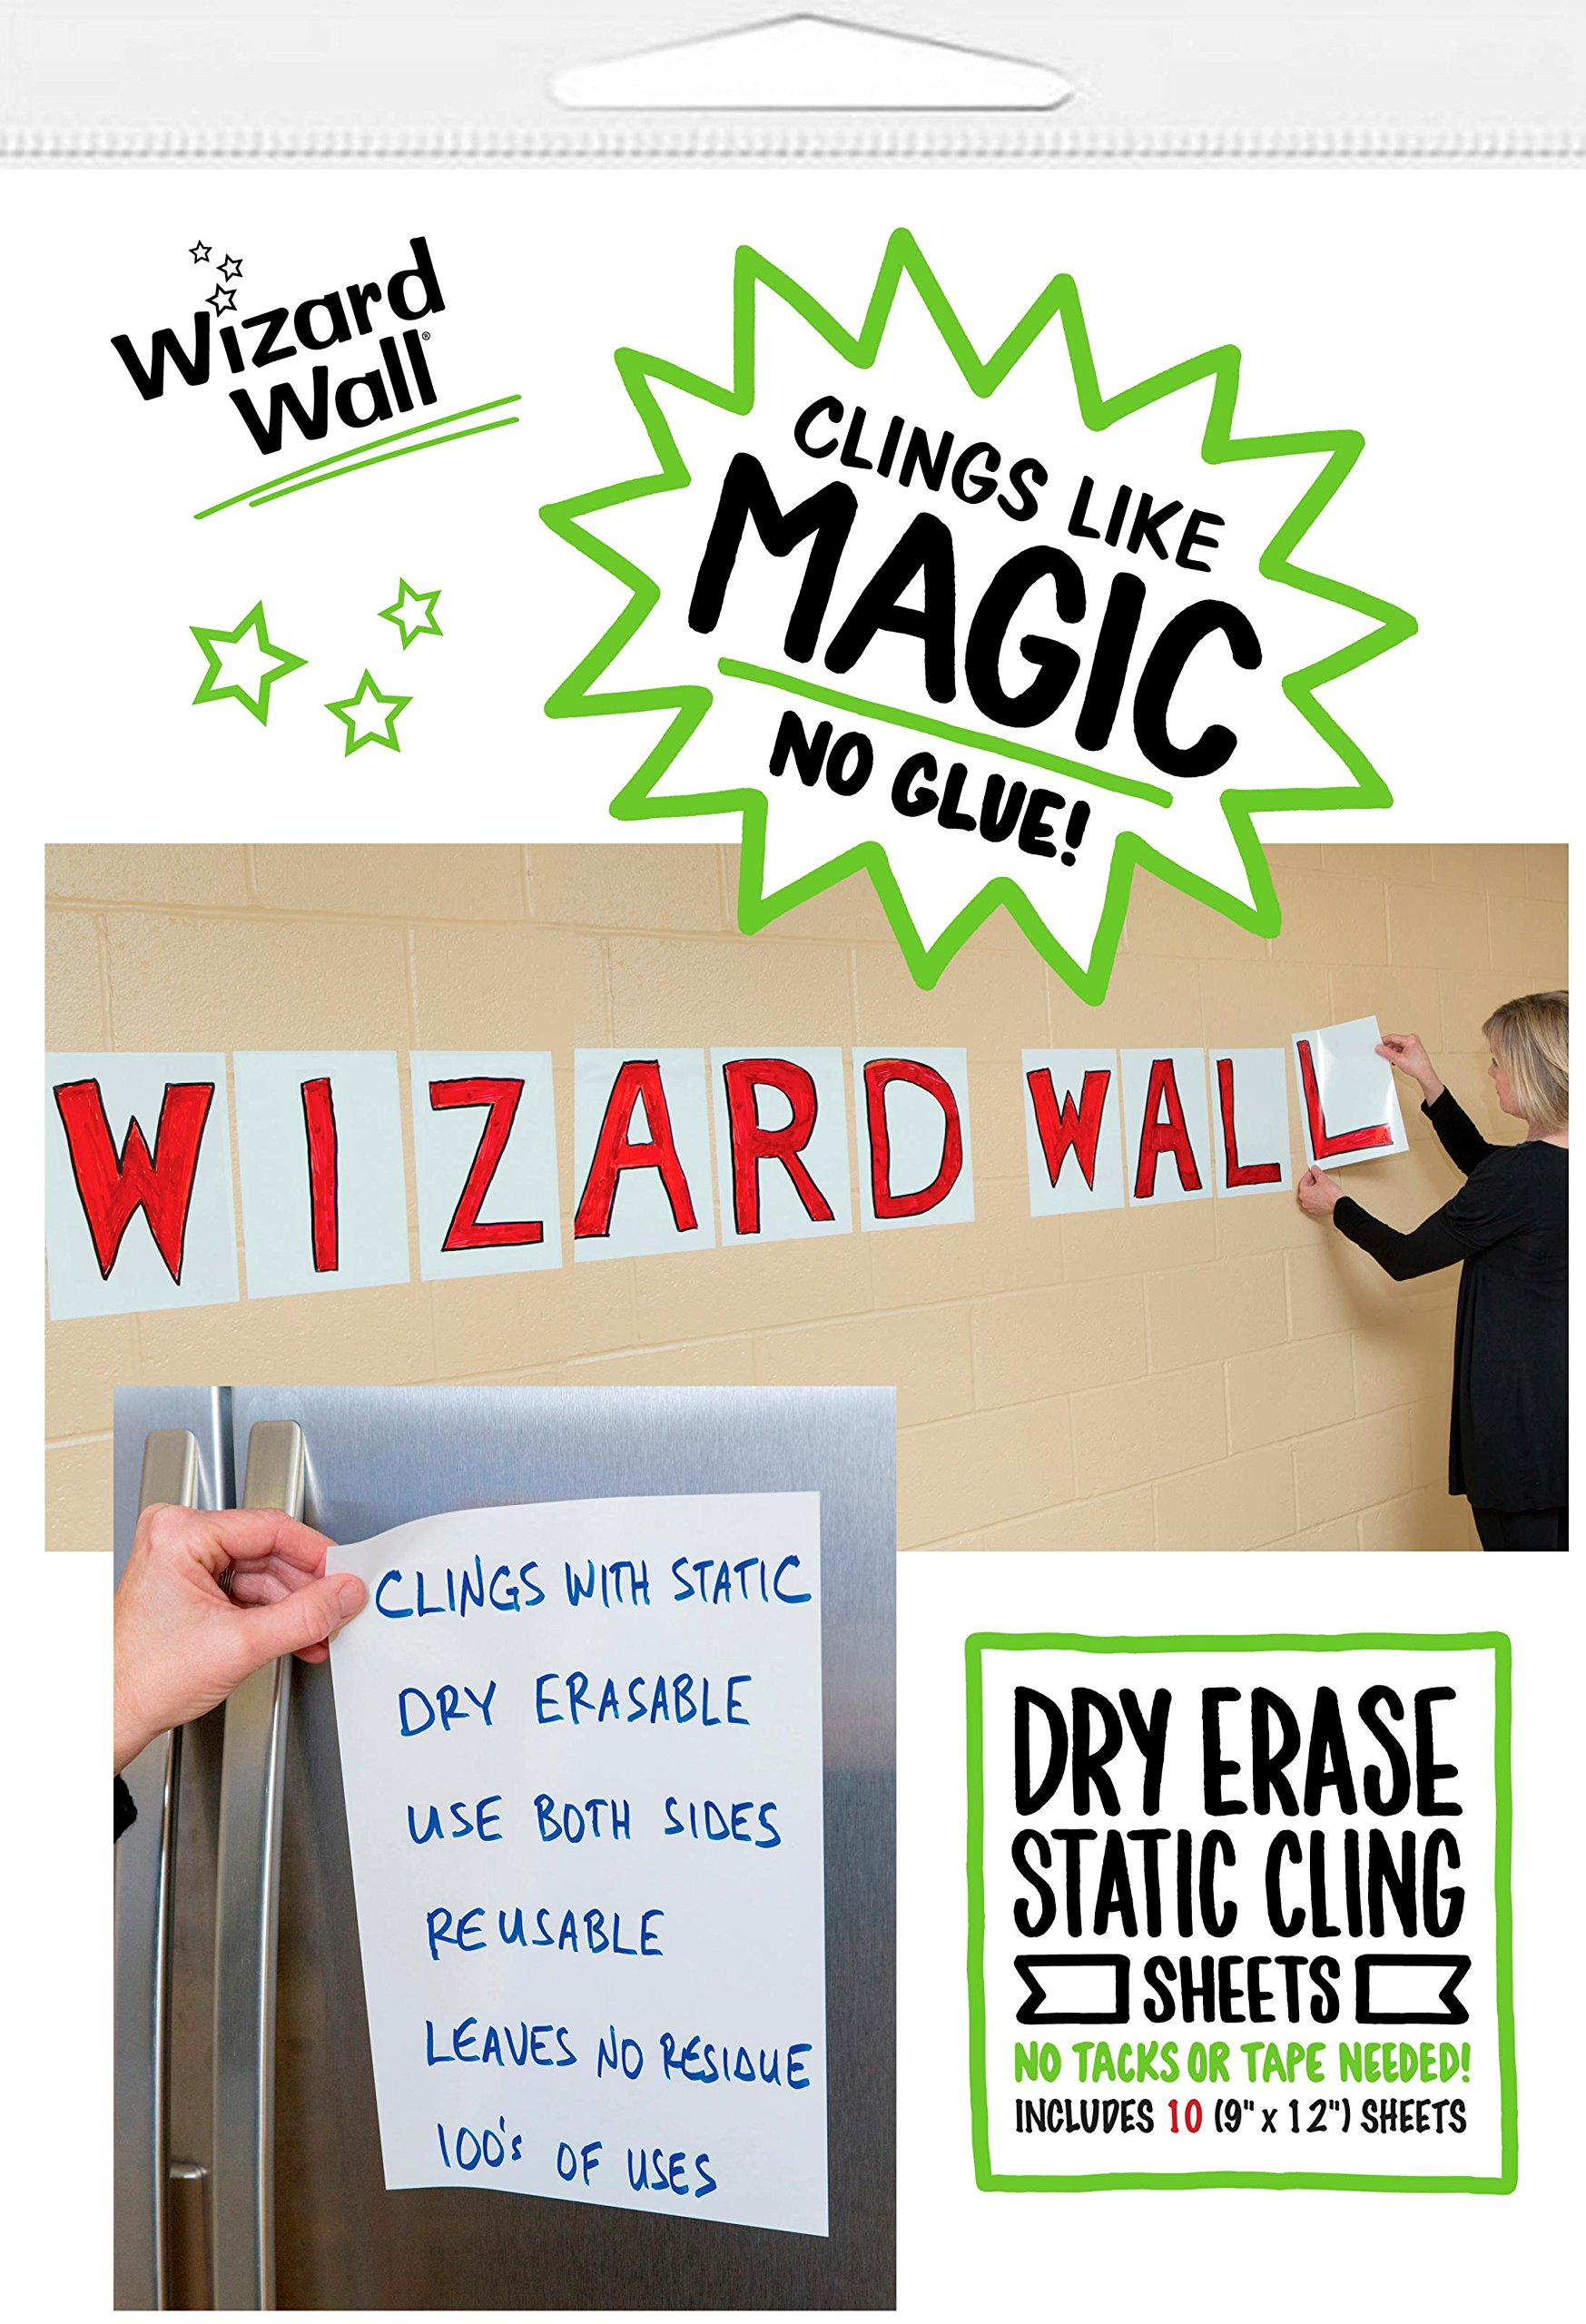 Wizard Wall Portable and Re-positionable Dry Erase Pre Cut Sheets, White, Available in 3 Sizes